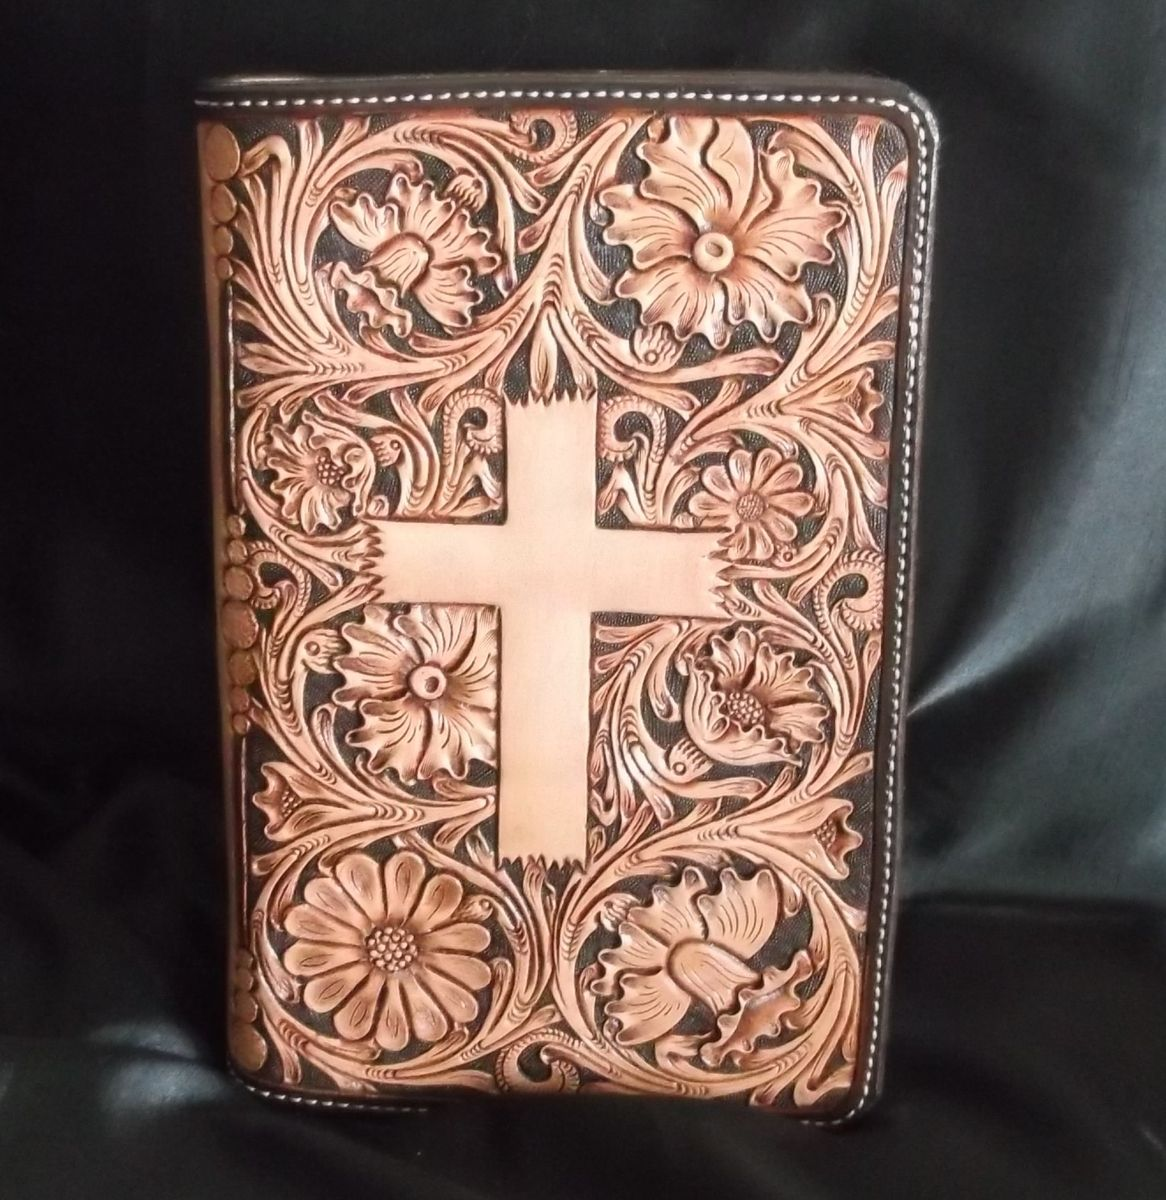 Bible Covers: Handmade Custom Leather Bible Covers By Double U Leather